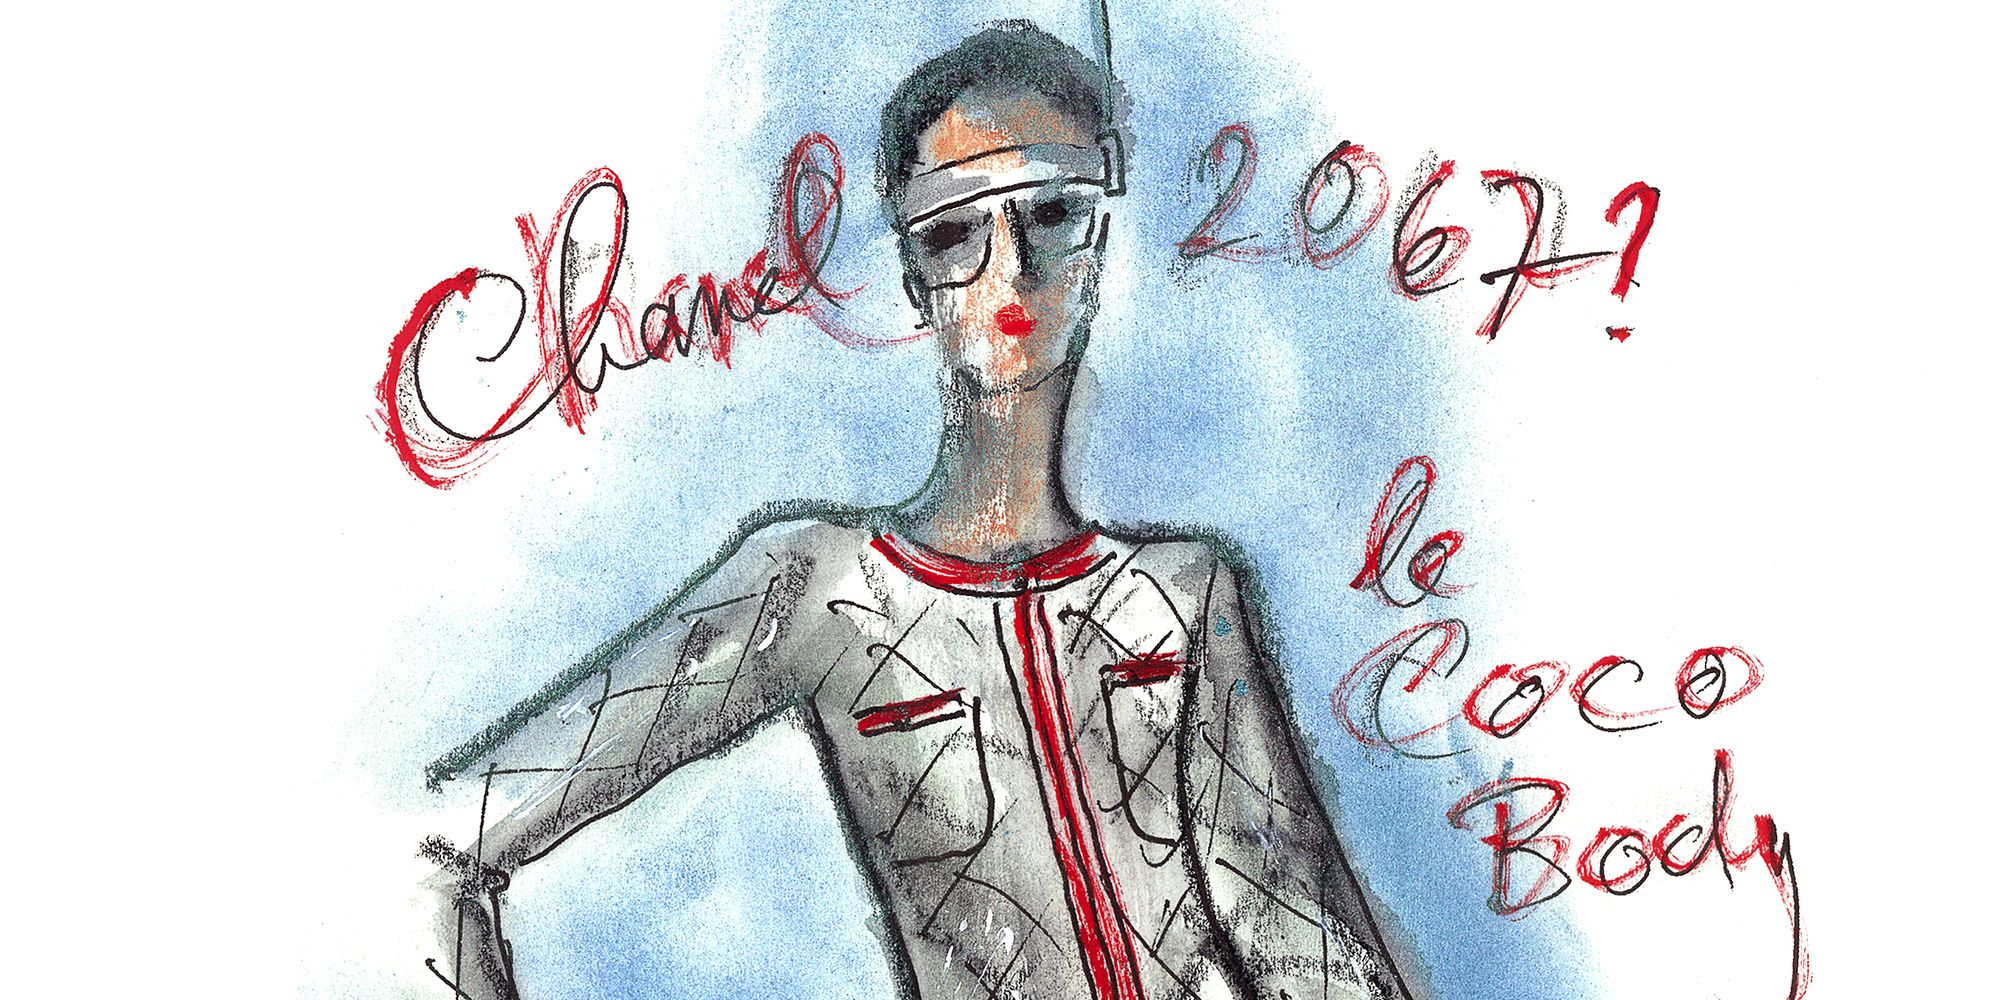 Future Of Fashion Where Fashion Industry Is Headed